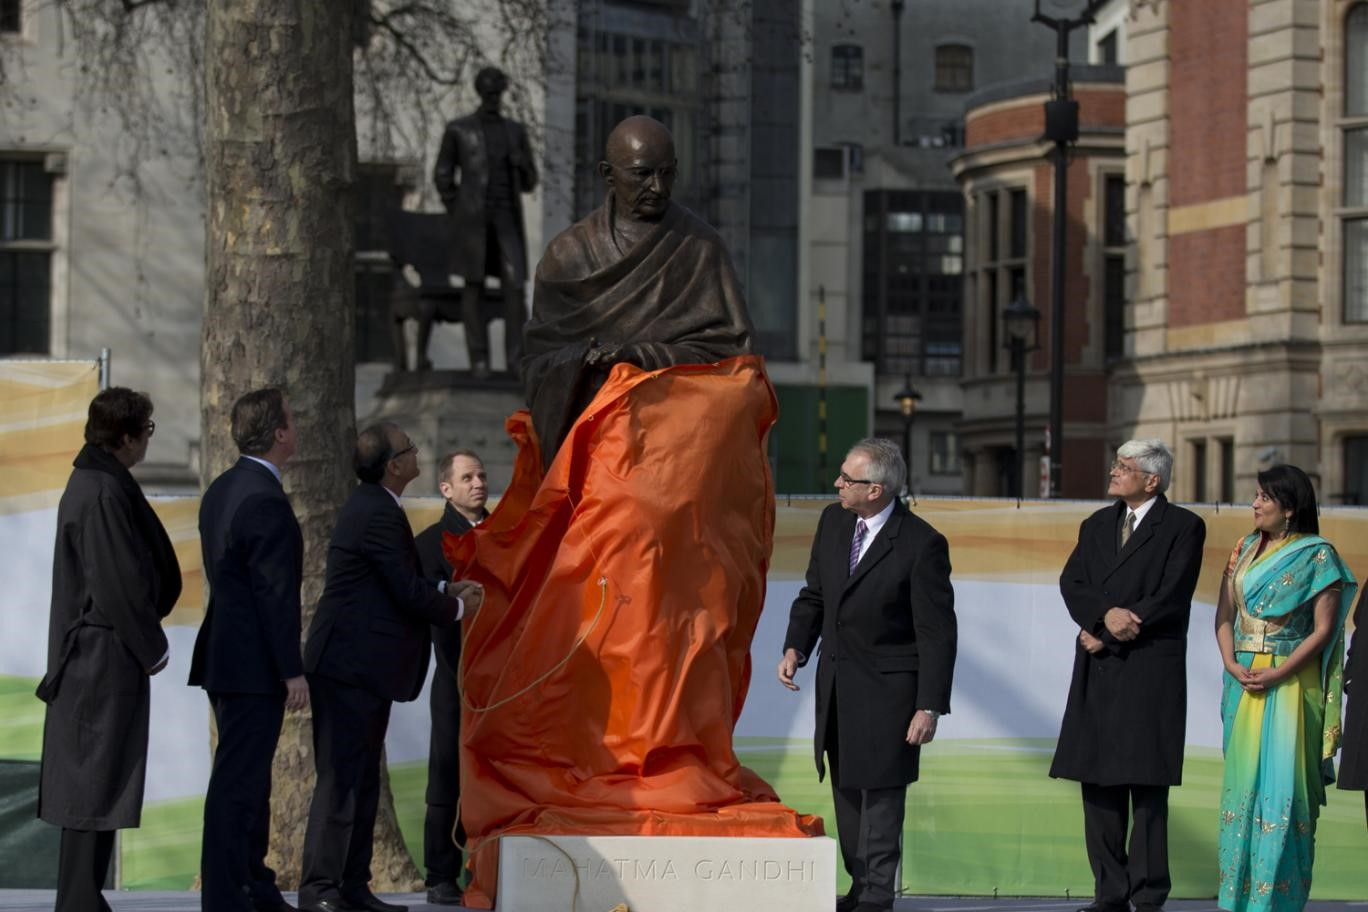 """Gandhi statue unveiled in Parliament Square, with PM David Cameron praising 'magnificent tribute to towering figure'"""